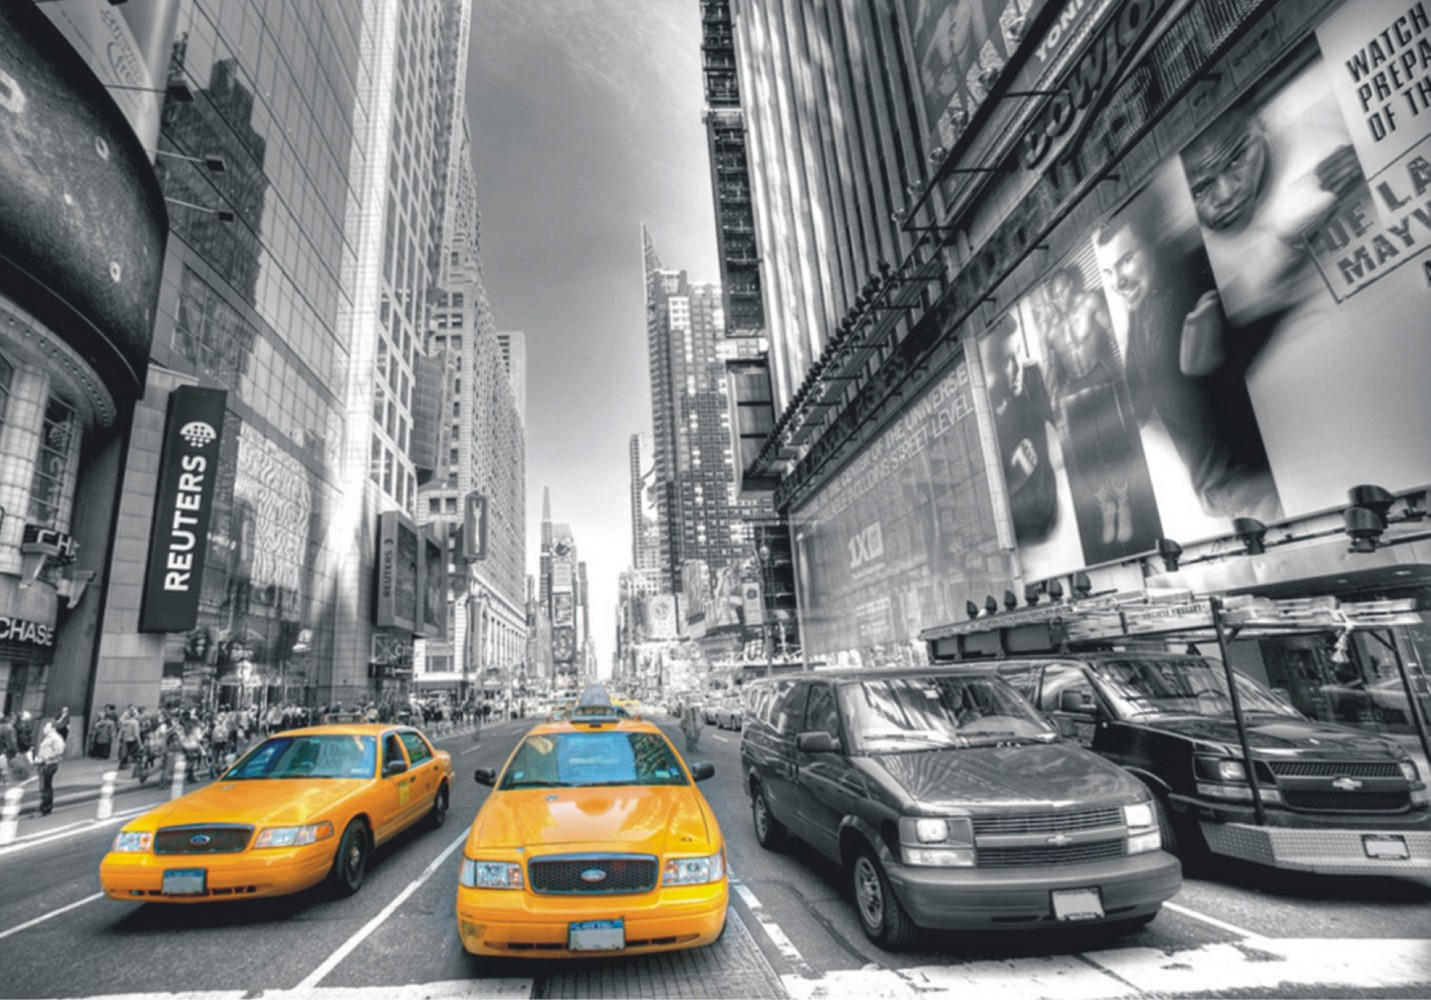 fototapete tapete new york taxi yellow cap manhattan nyc. Black Bedroom Furniture Sets. Home Design Ideas